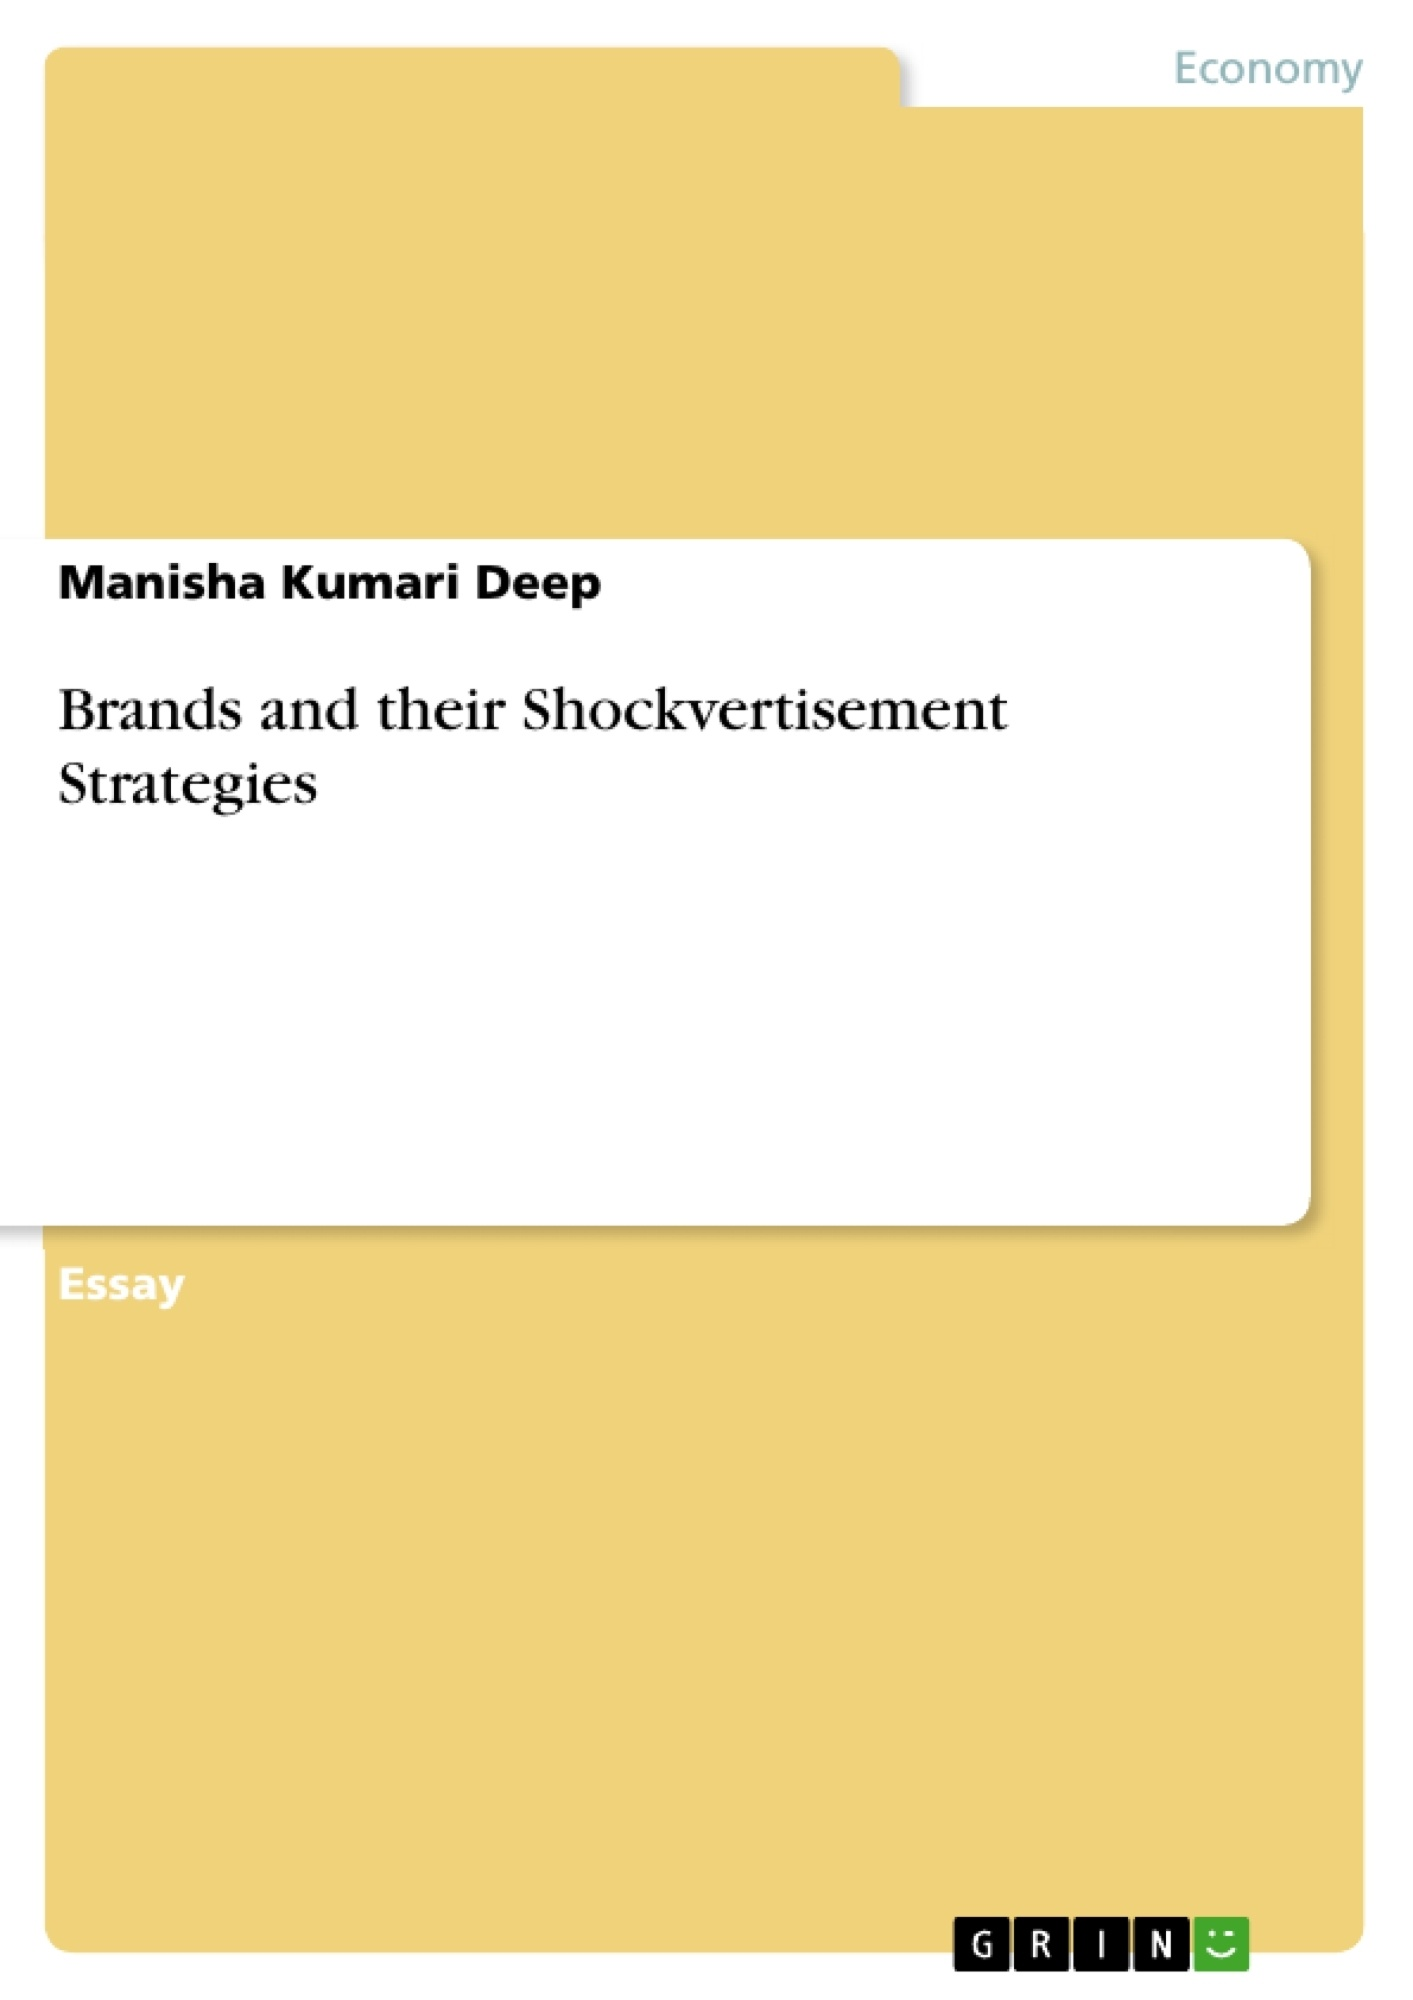 Title: Brands and their Shockvertisement Strategies